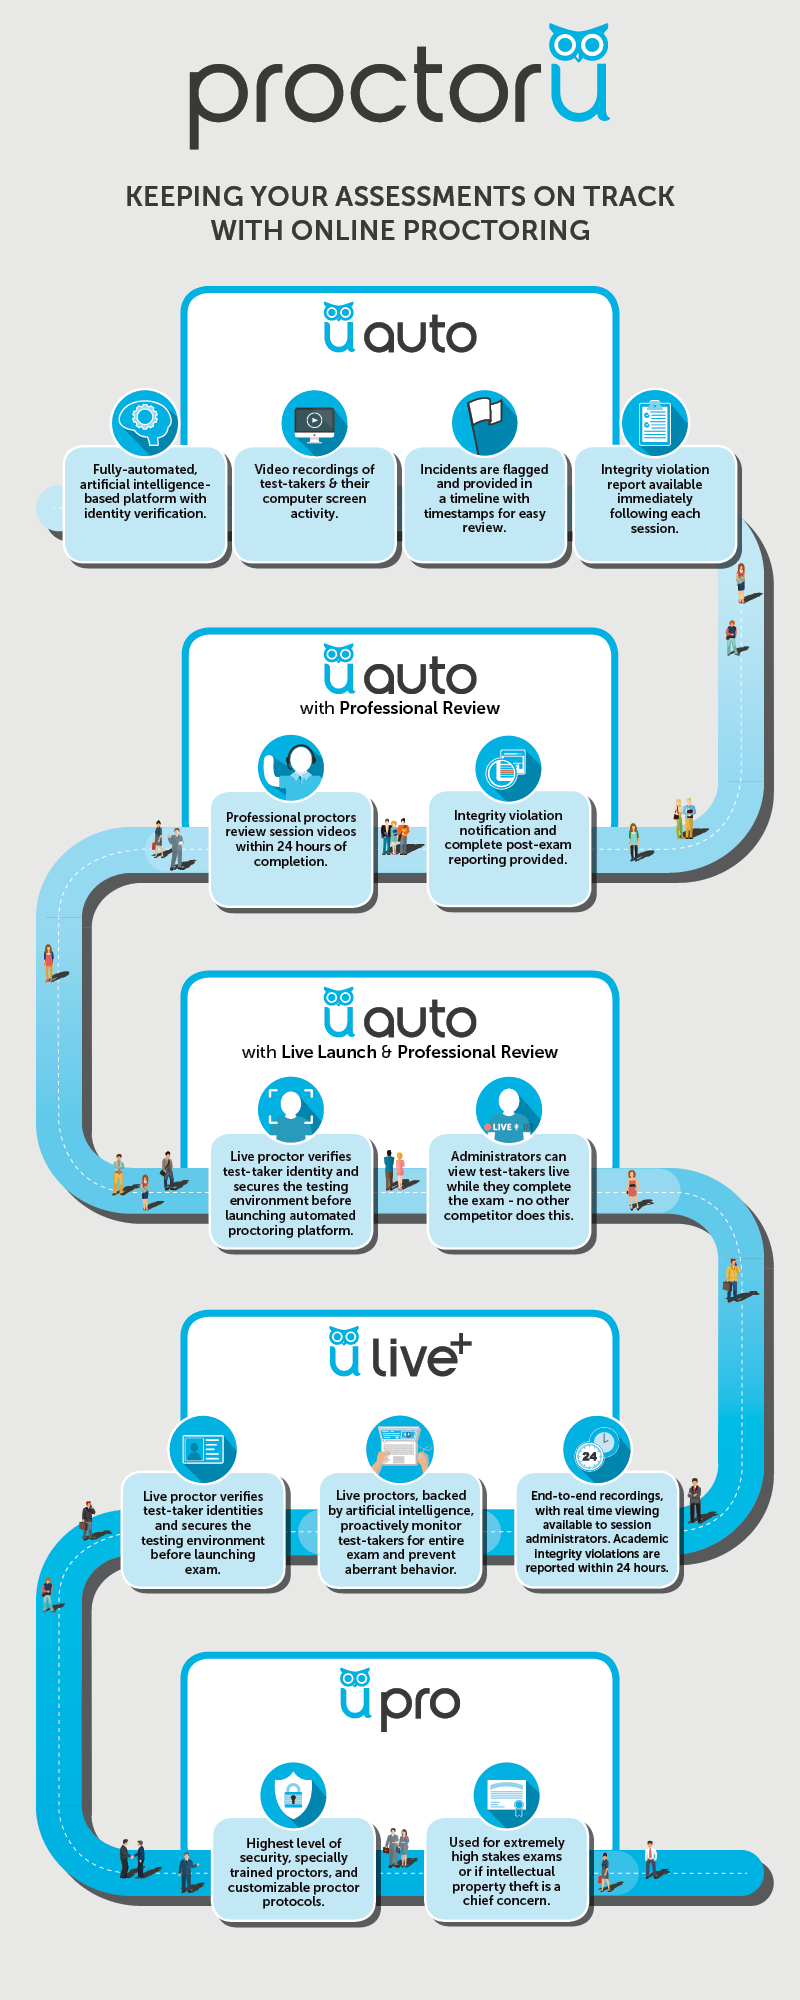 Keeping your assessments on track with online proctoring infographic